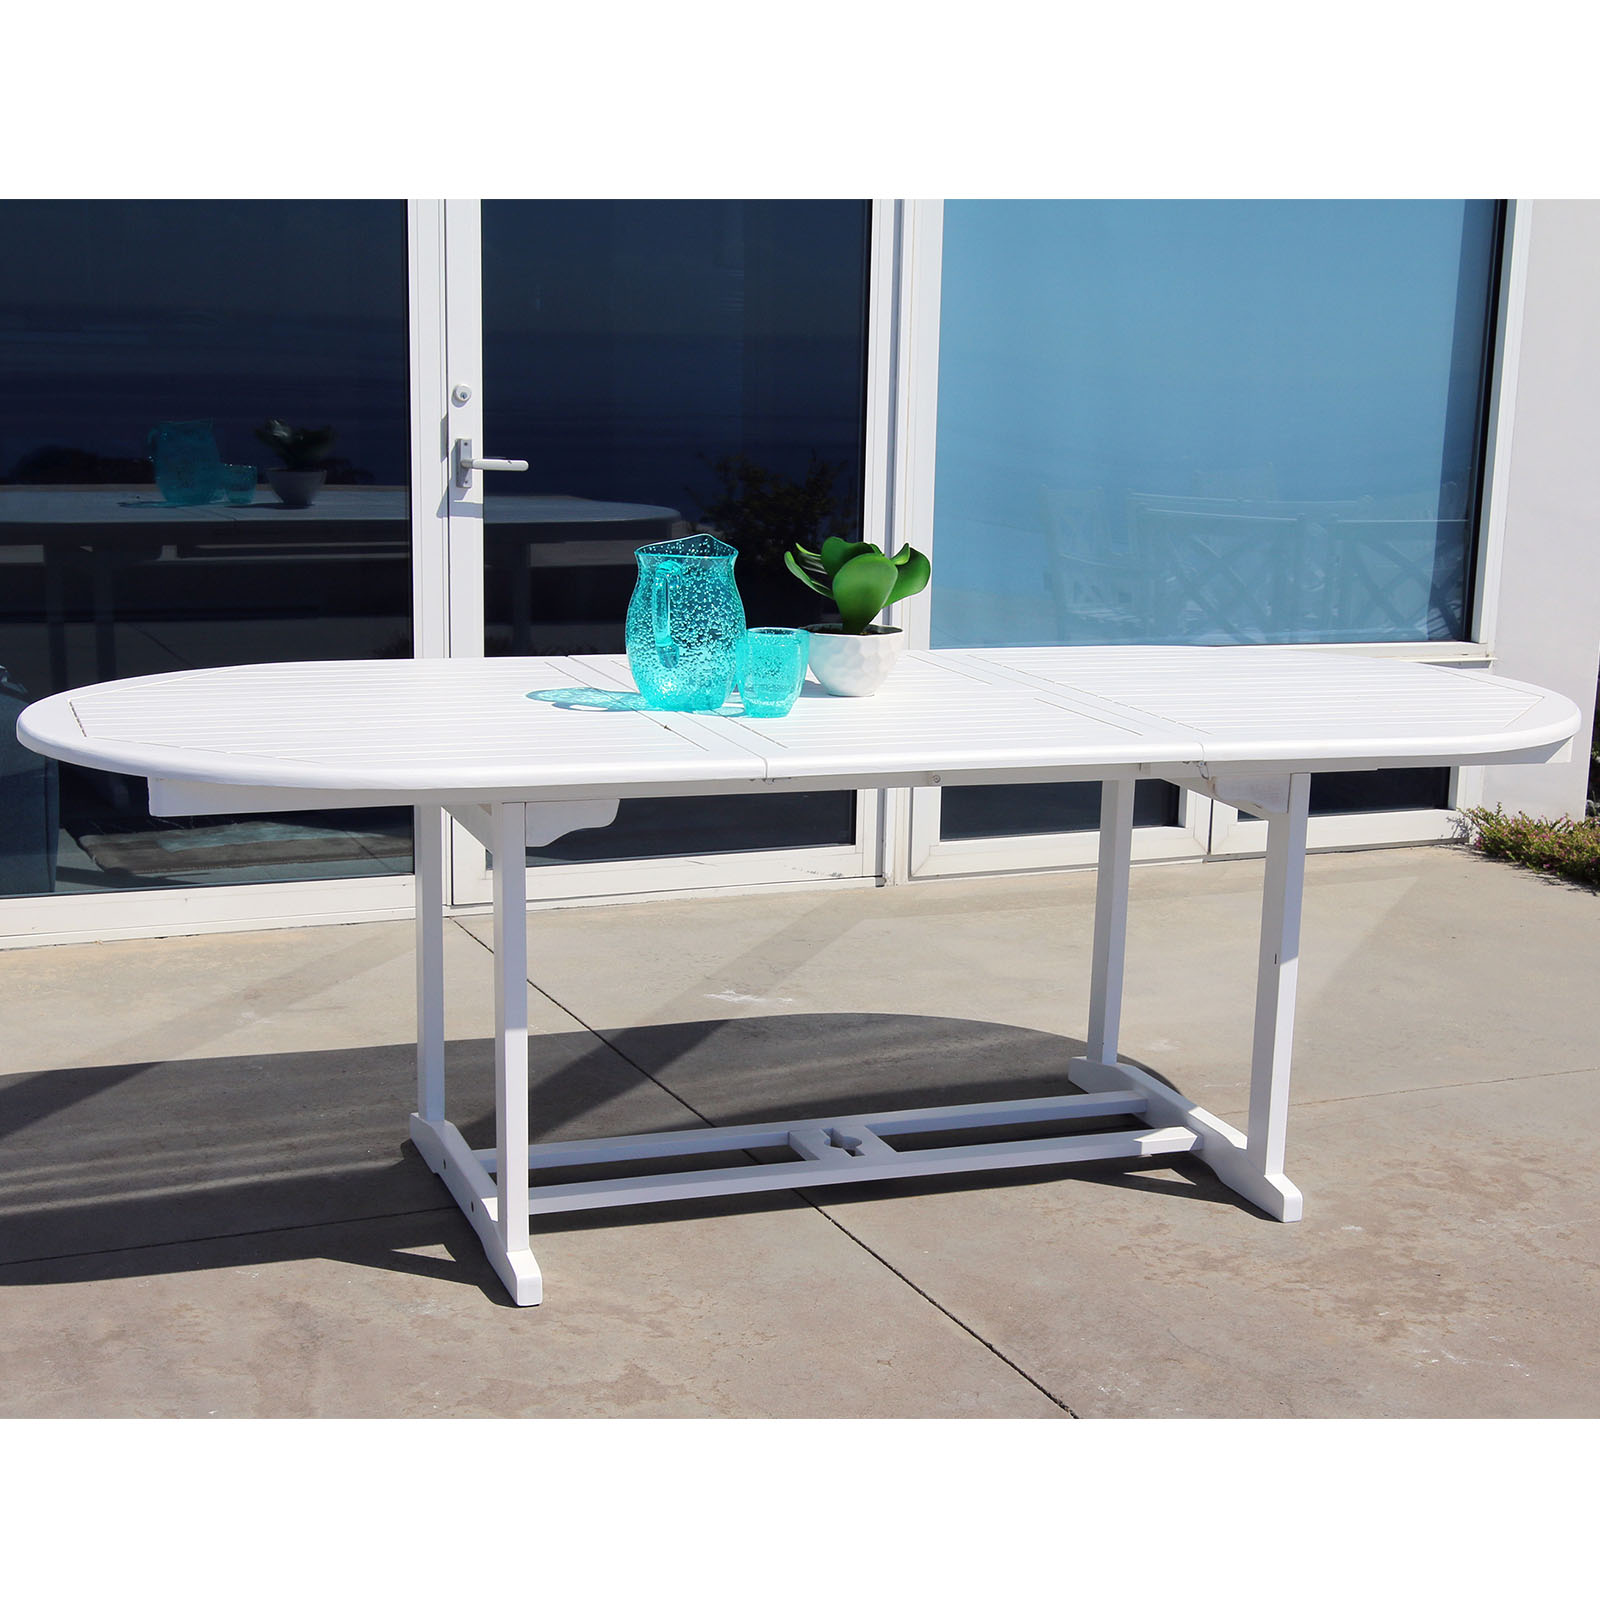 Bradley Eco-friendly Outdoor White Hardwood Oval Extention Garden Table